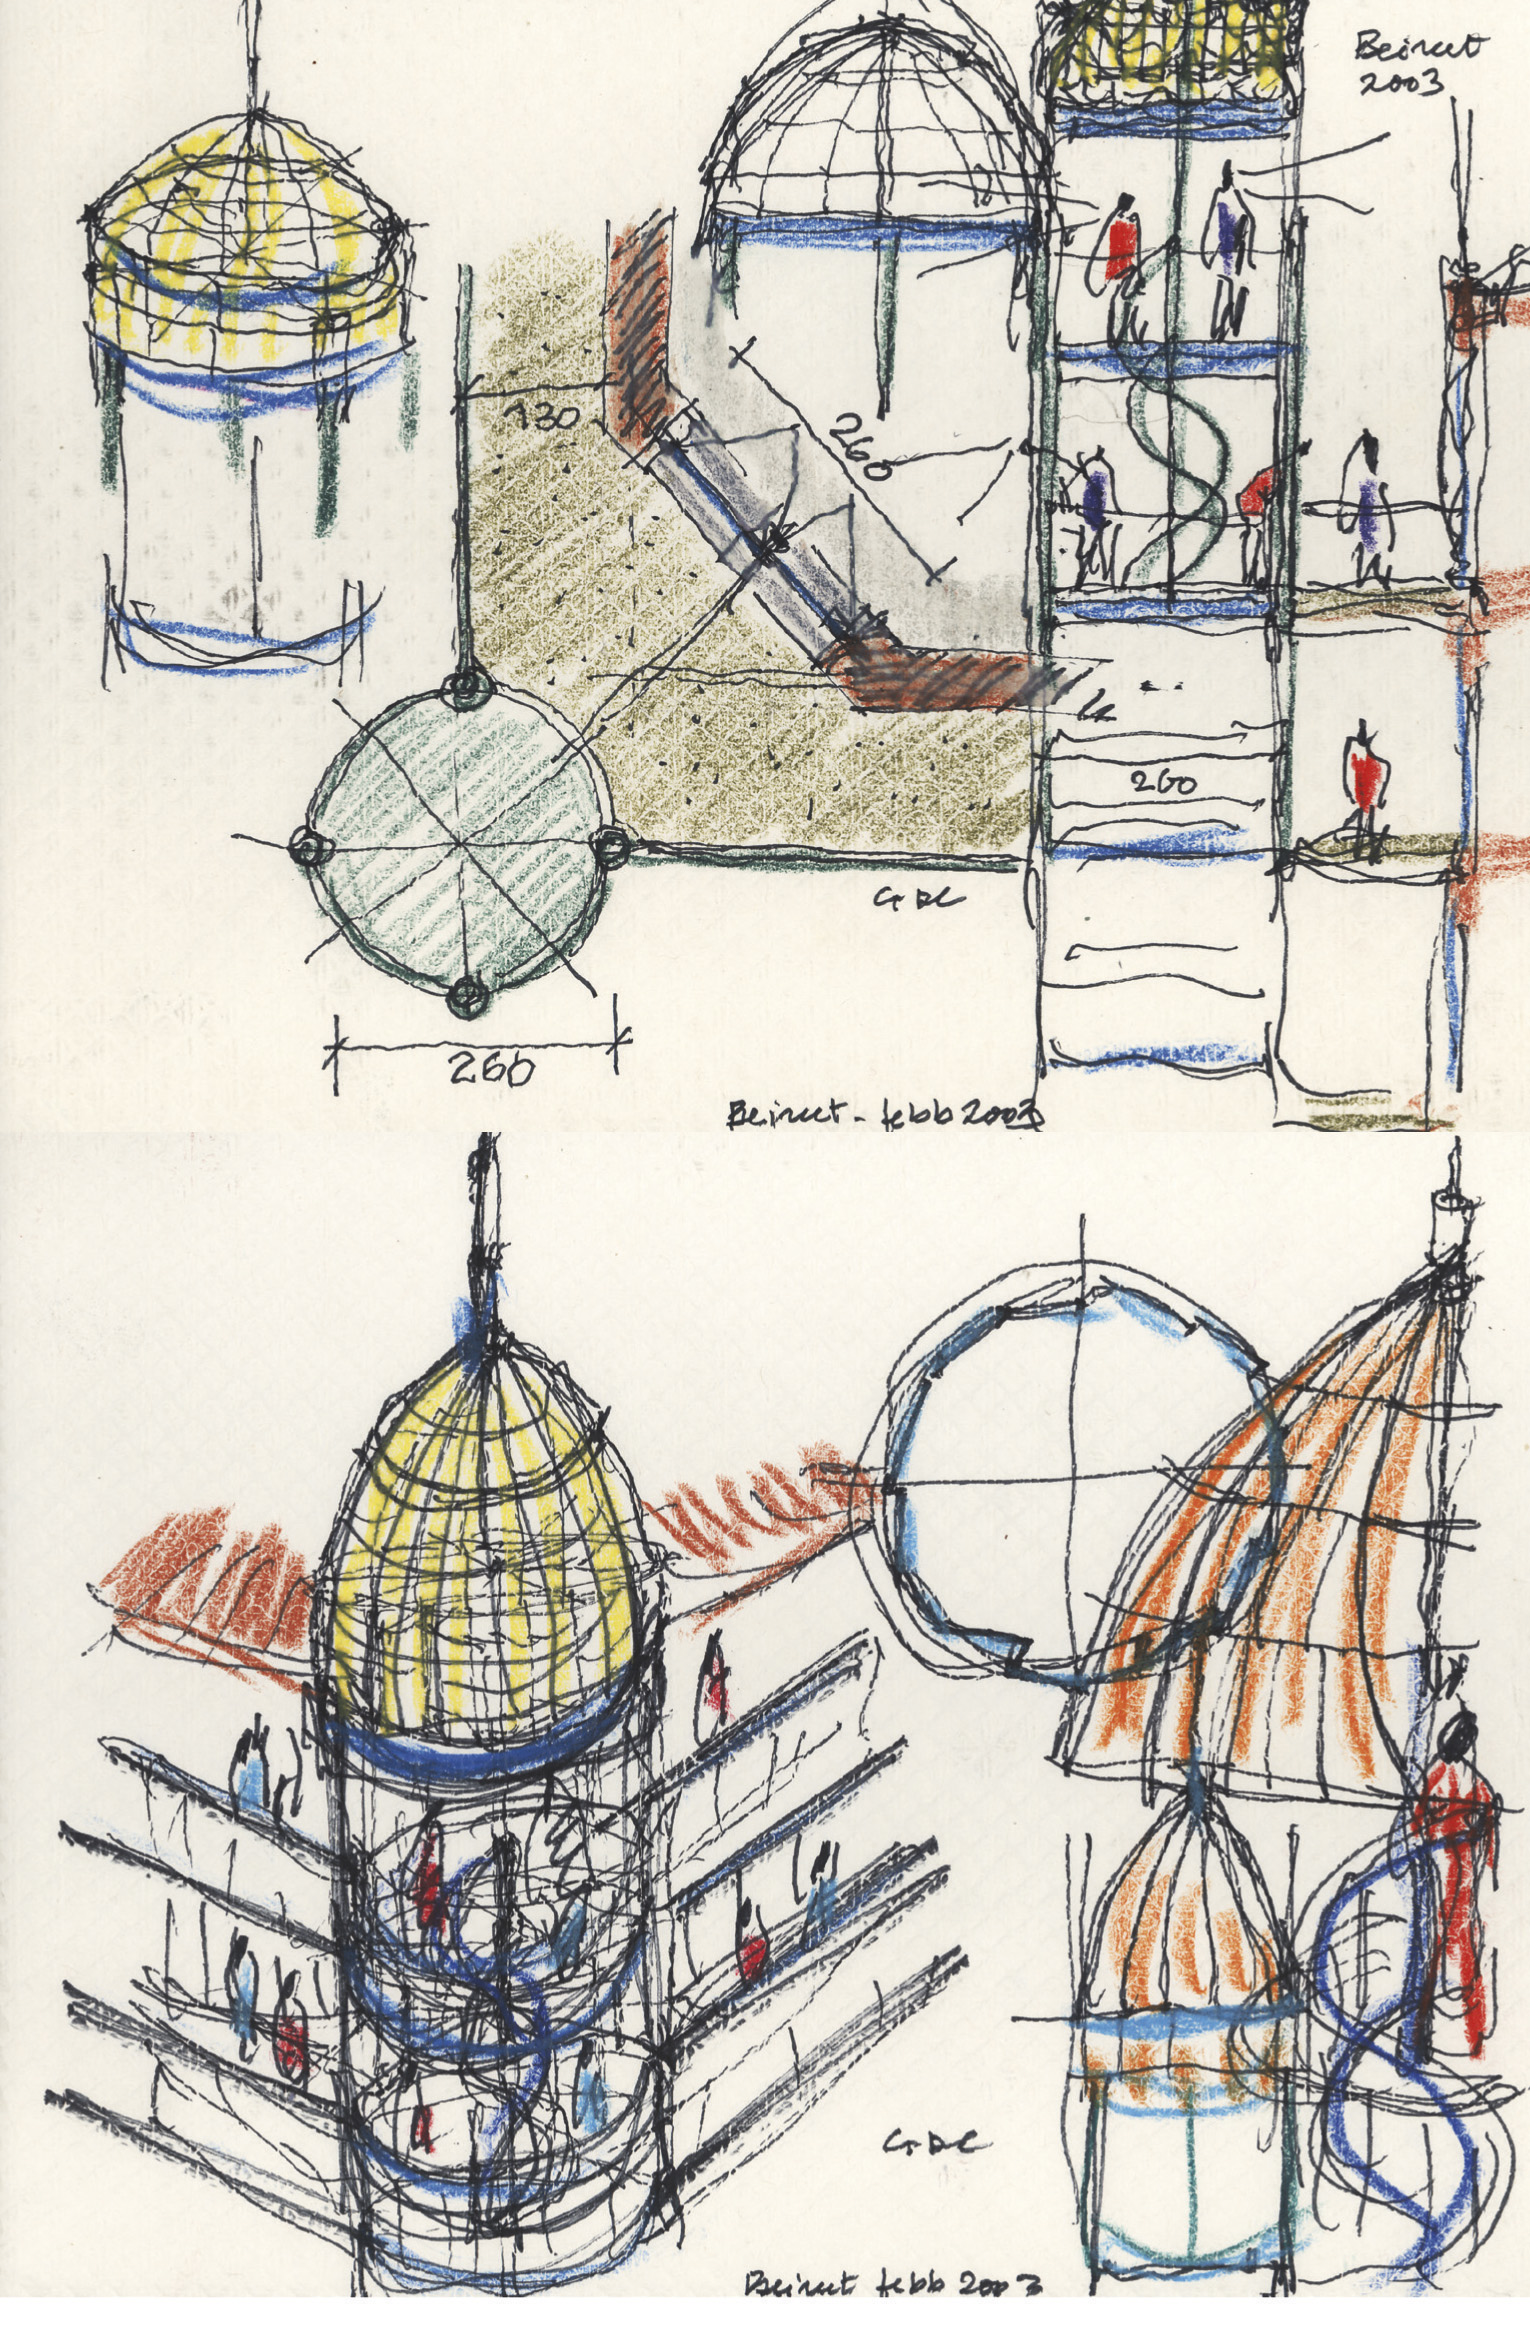 Inspiration and Process in Architecture - Giancarlo De Carlo